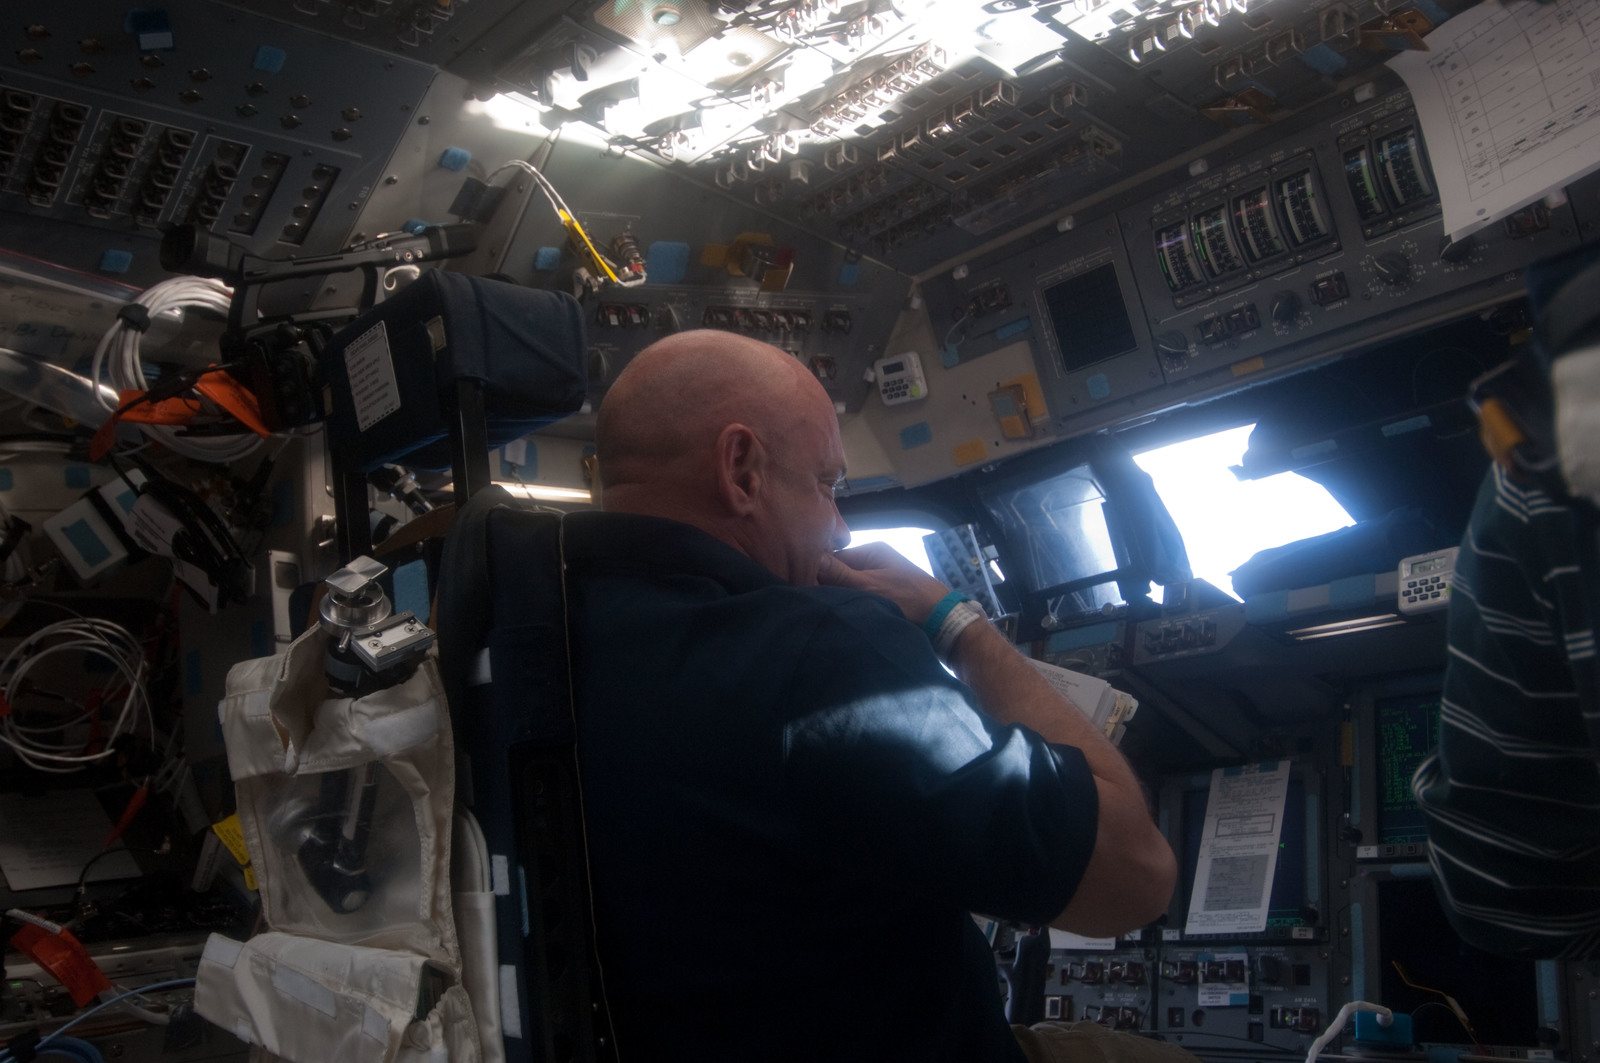 S134E005347 - STS-134 - View of STS-134 CDR Kelly working on the Flight Deck